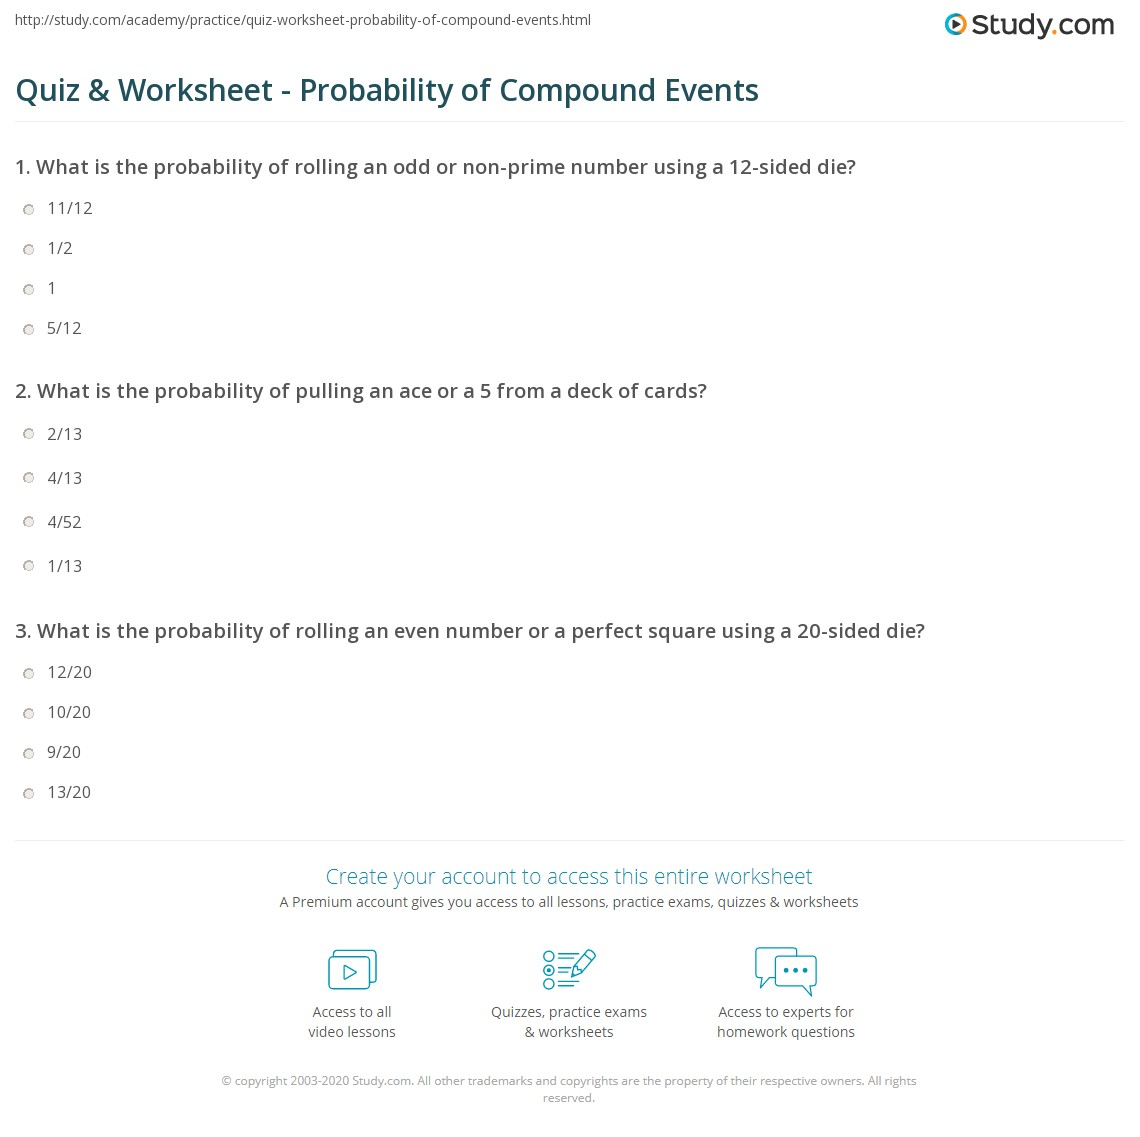 Quiz Worksheet Probability Of Compound Events Study Com